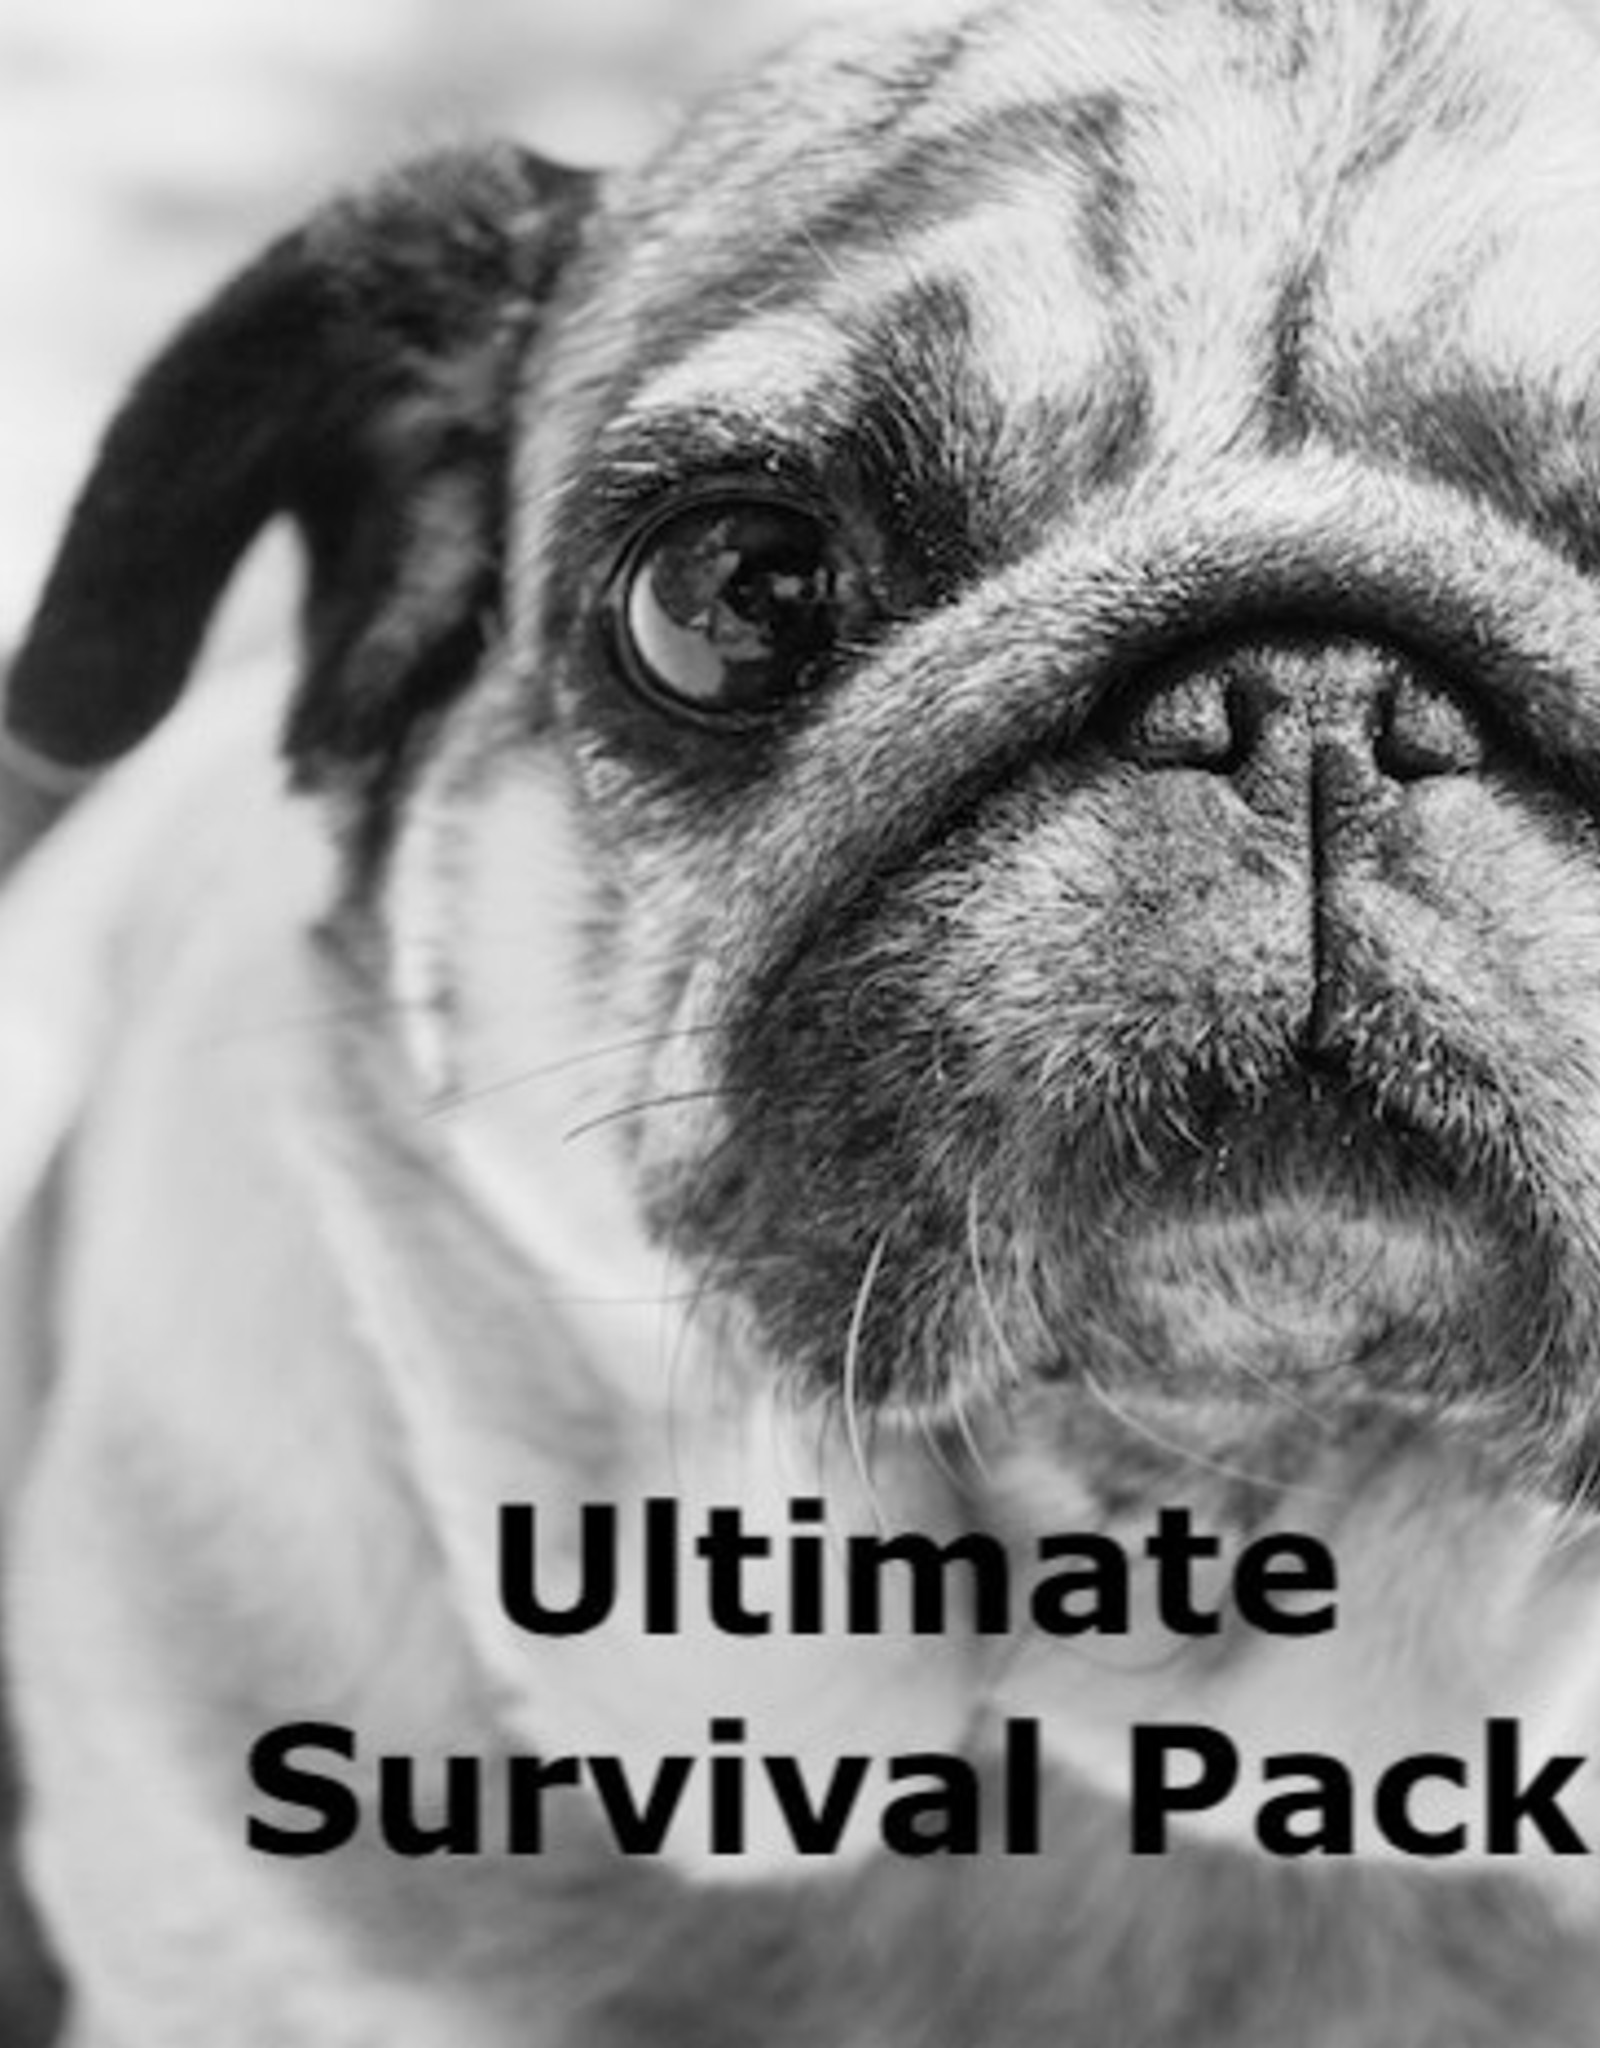 Ultimate Survival Pack - Small Dog